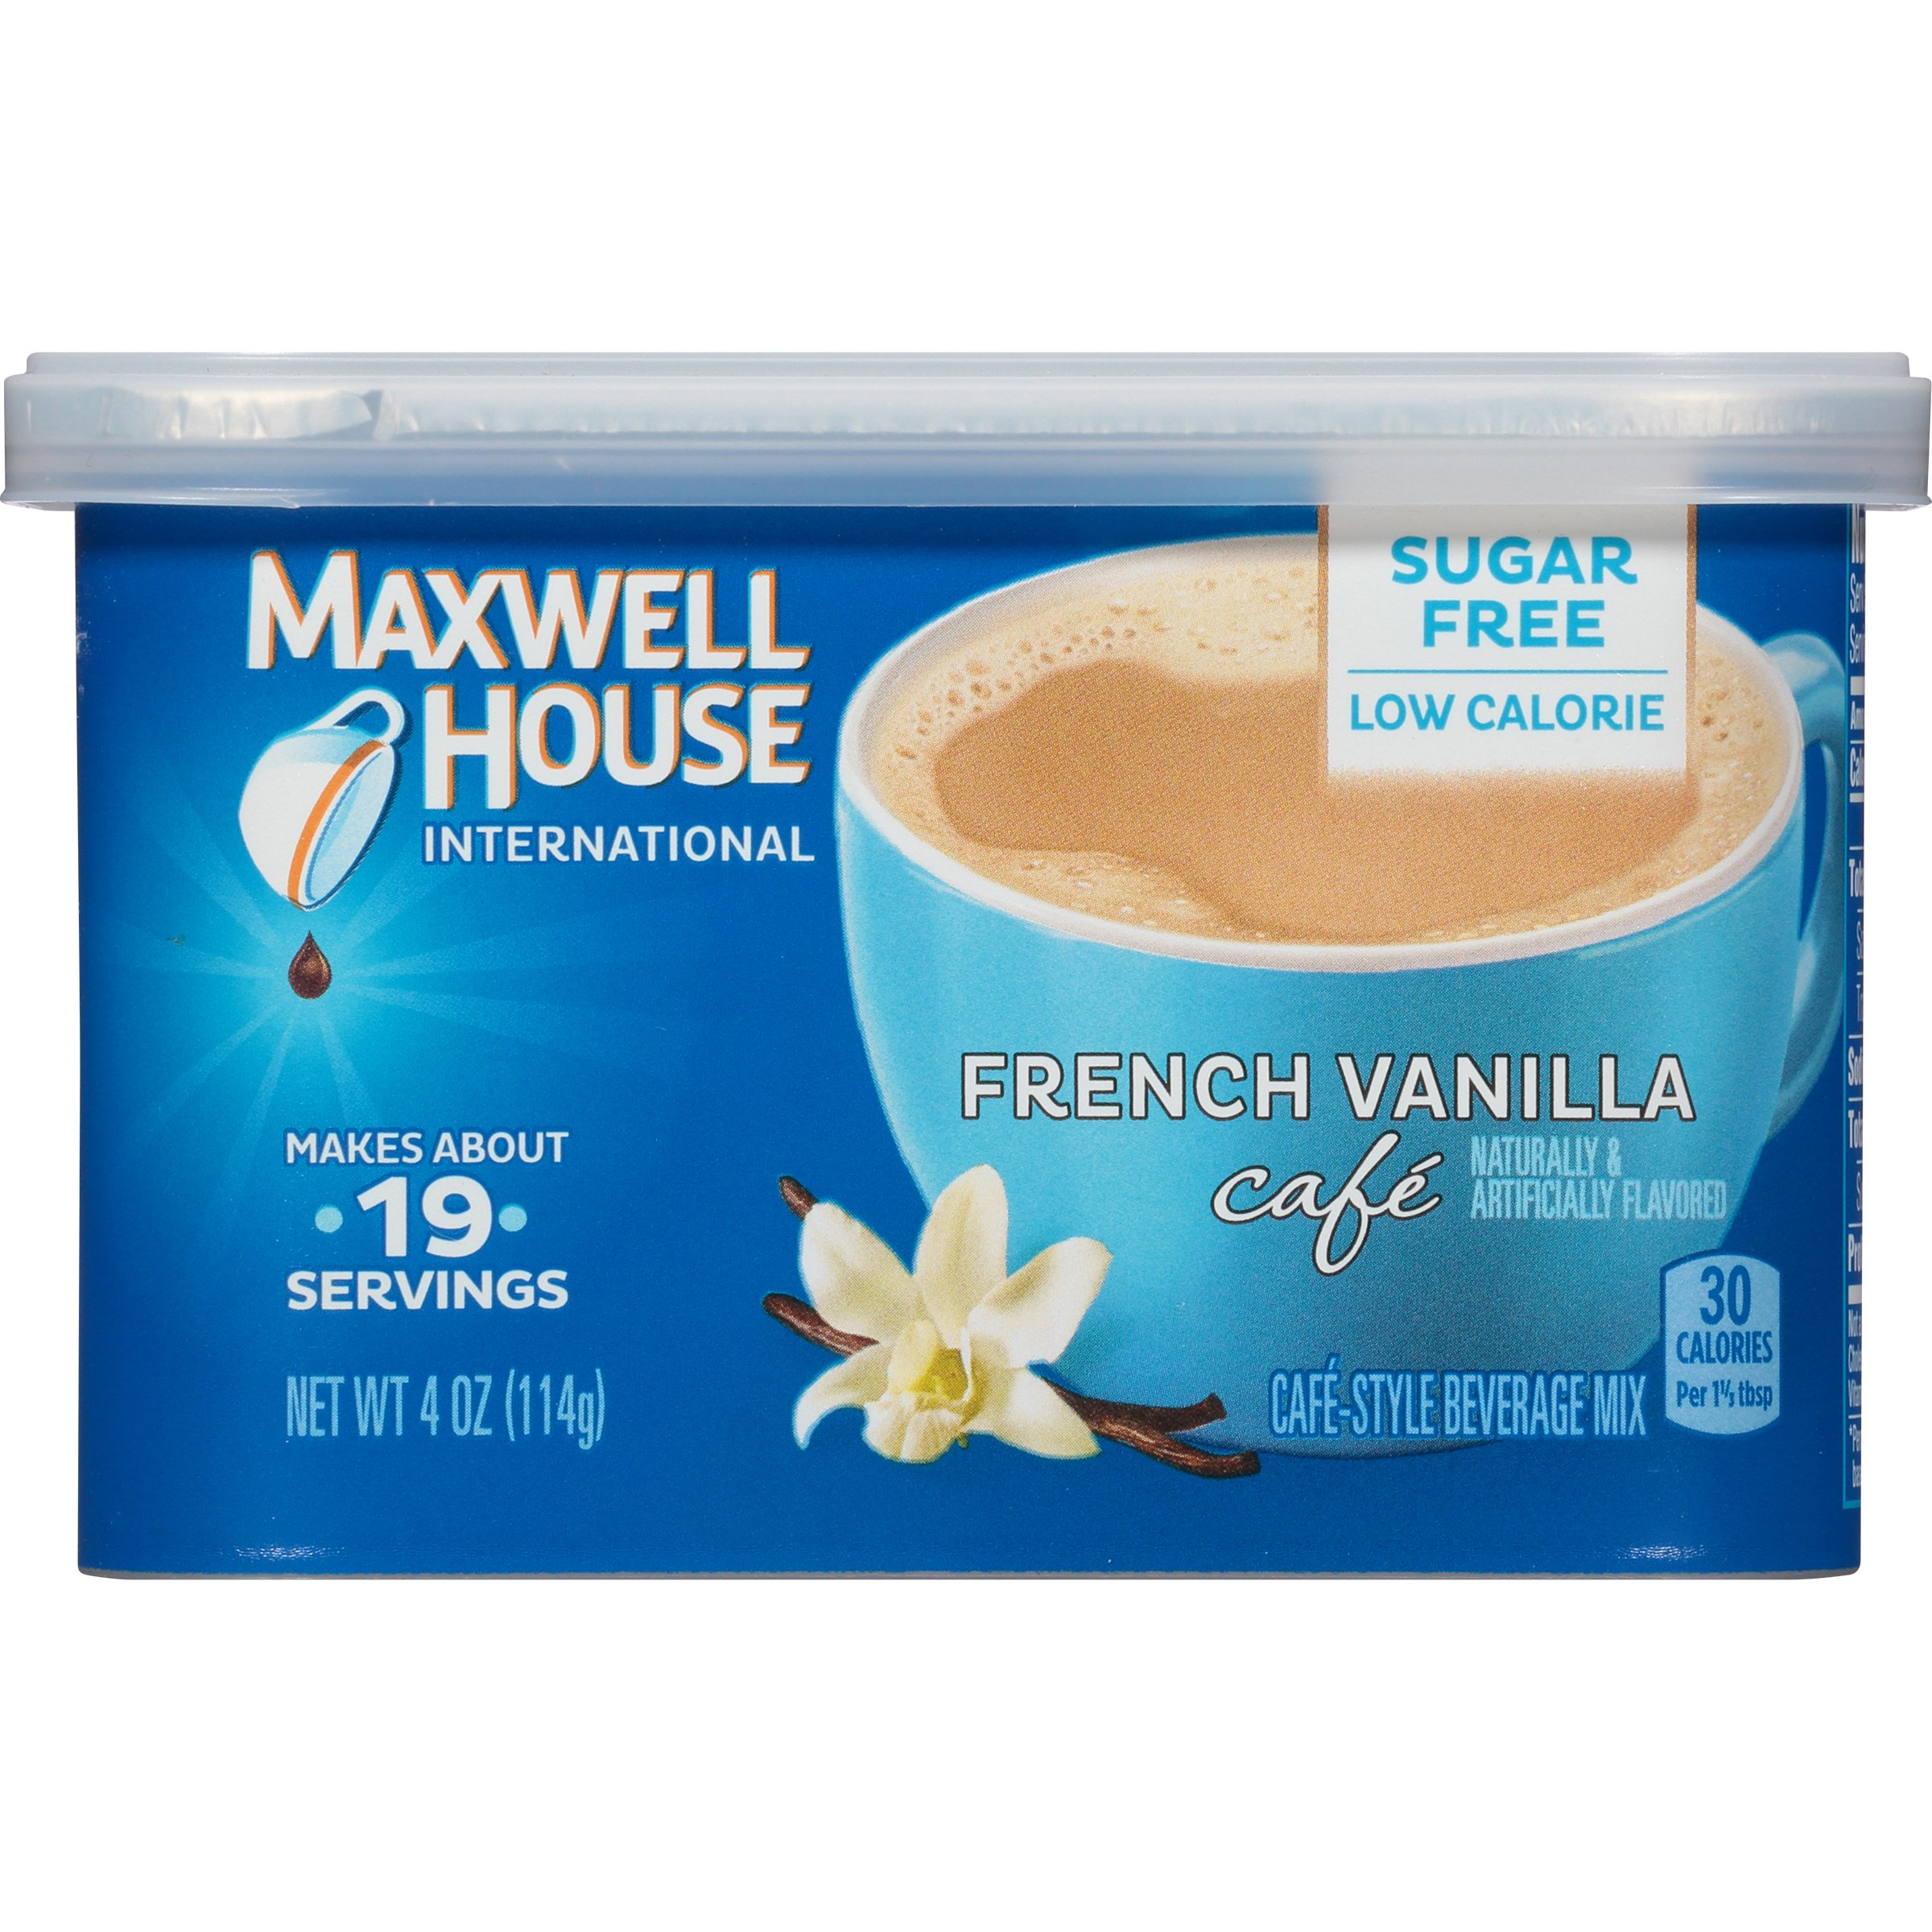 Maxwell House International Cafe Instant French Vanilla Coffee (4 oz Canisters, Pack of 4) by MAXWELL HOUSE